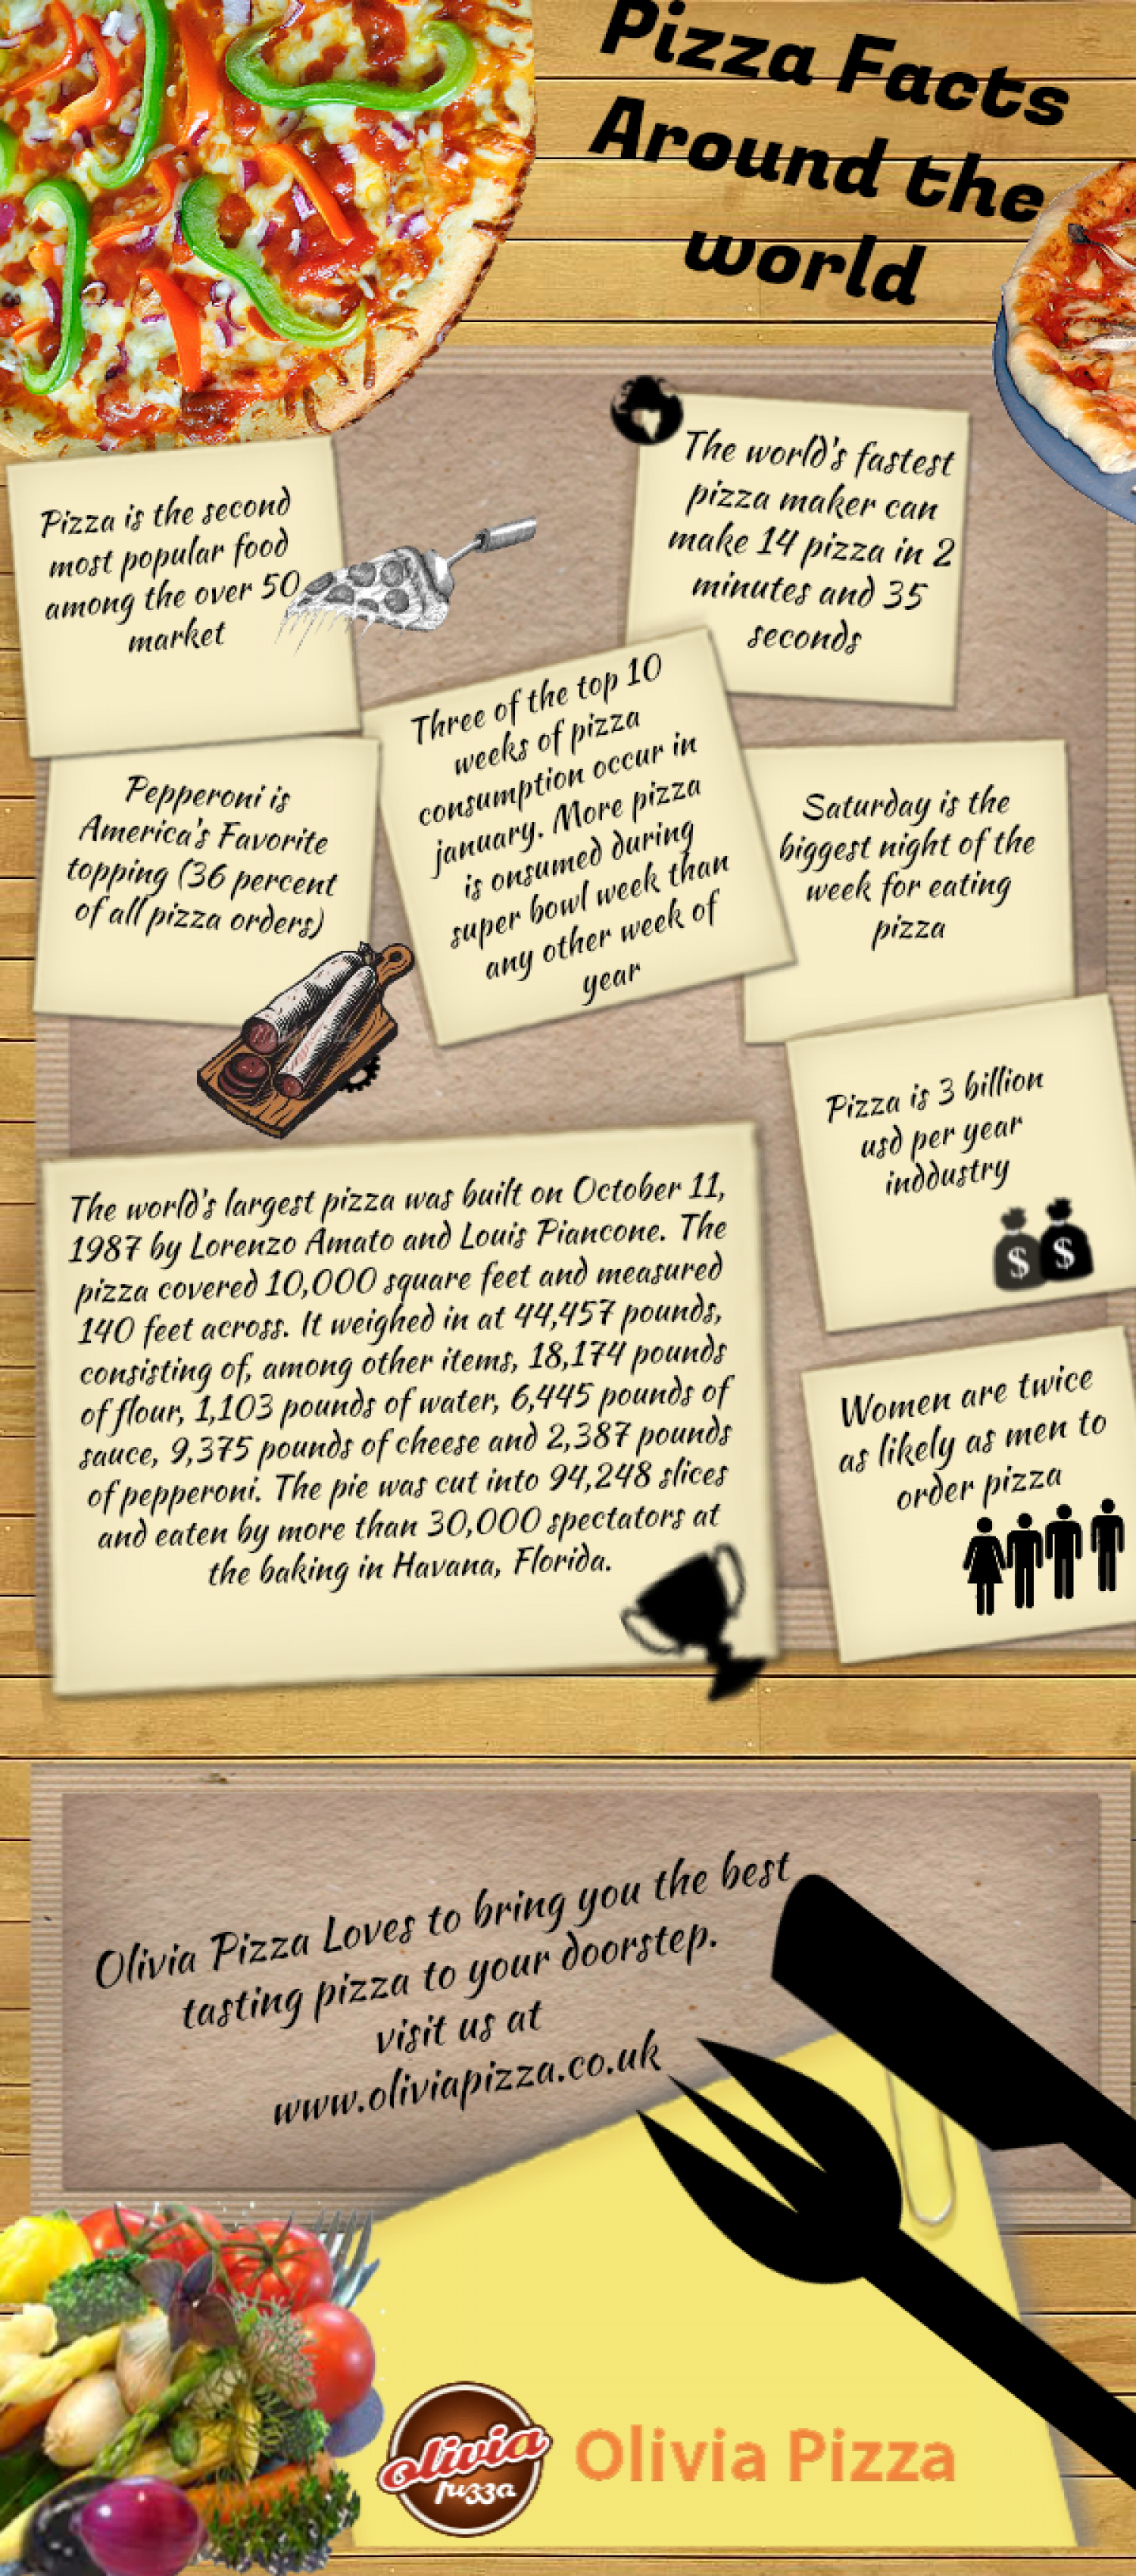 Pizza Facts Around the world Infographic